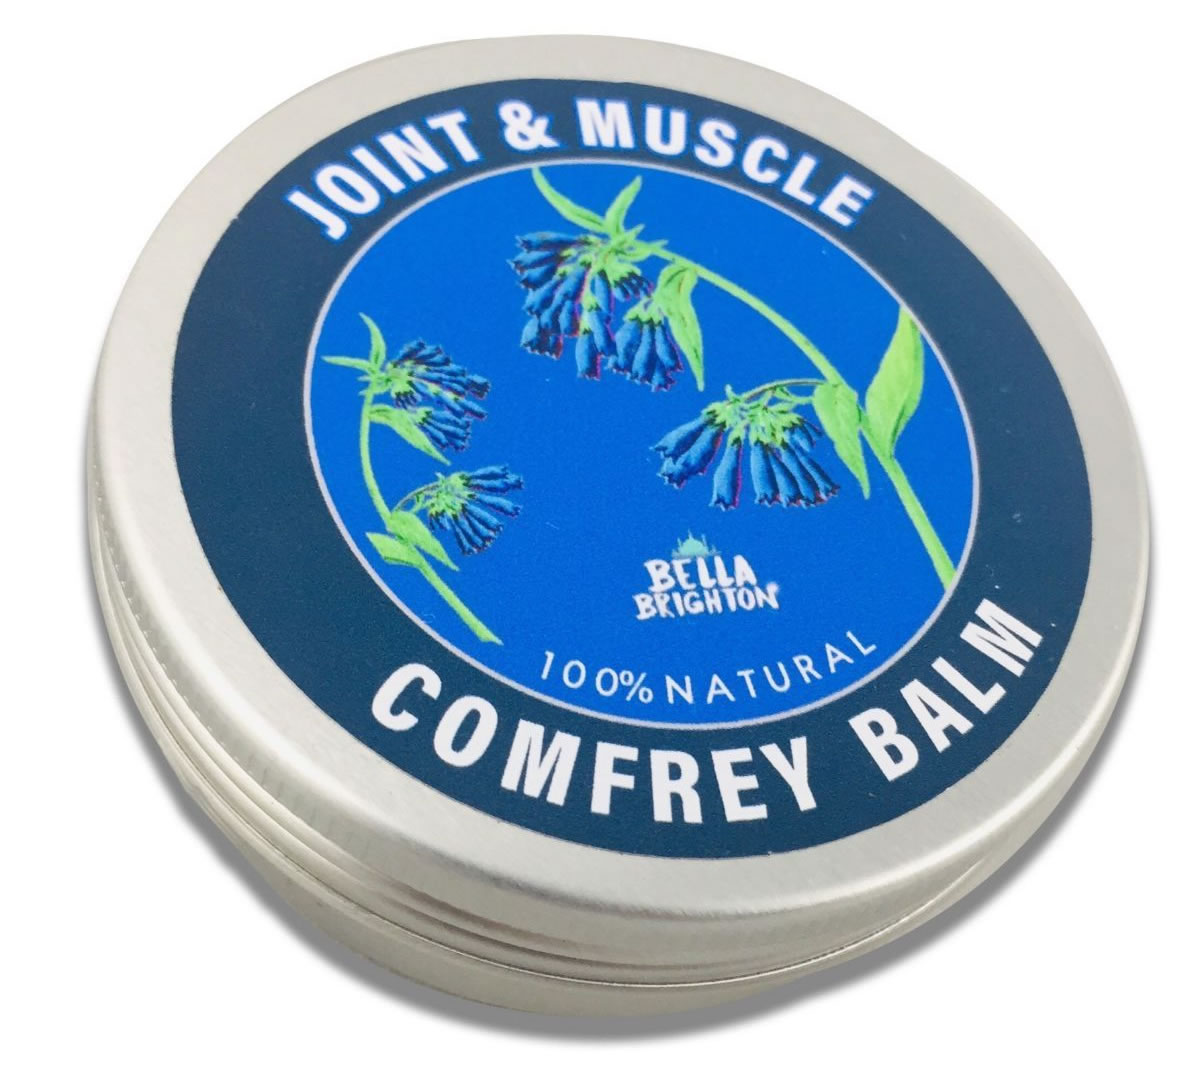 Joint & Muscle Comfrey Balm, 50ml